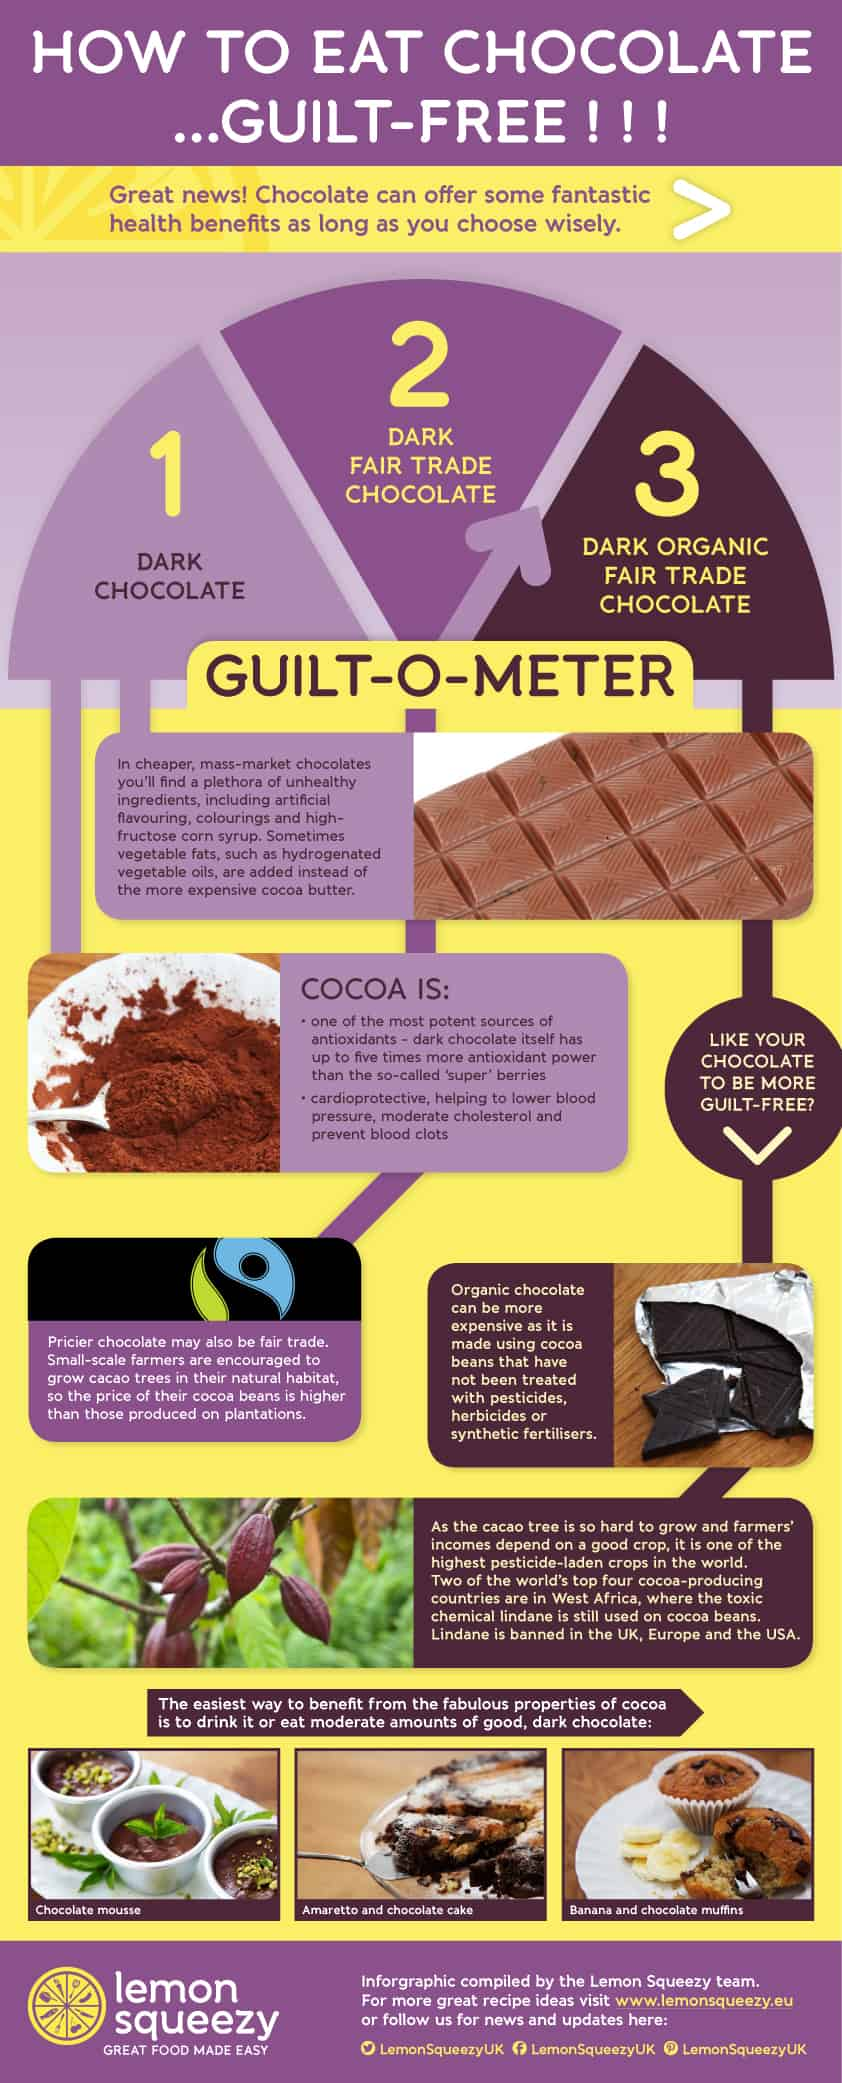 guilt-free chocolate infographic